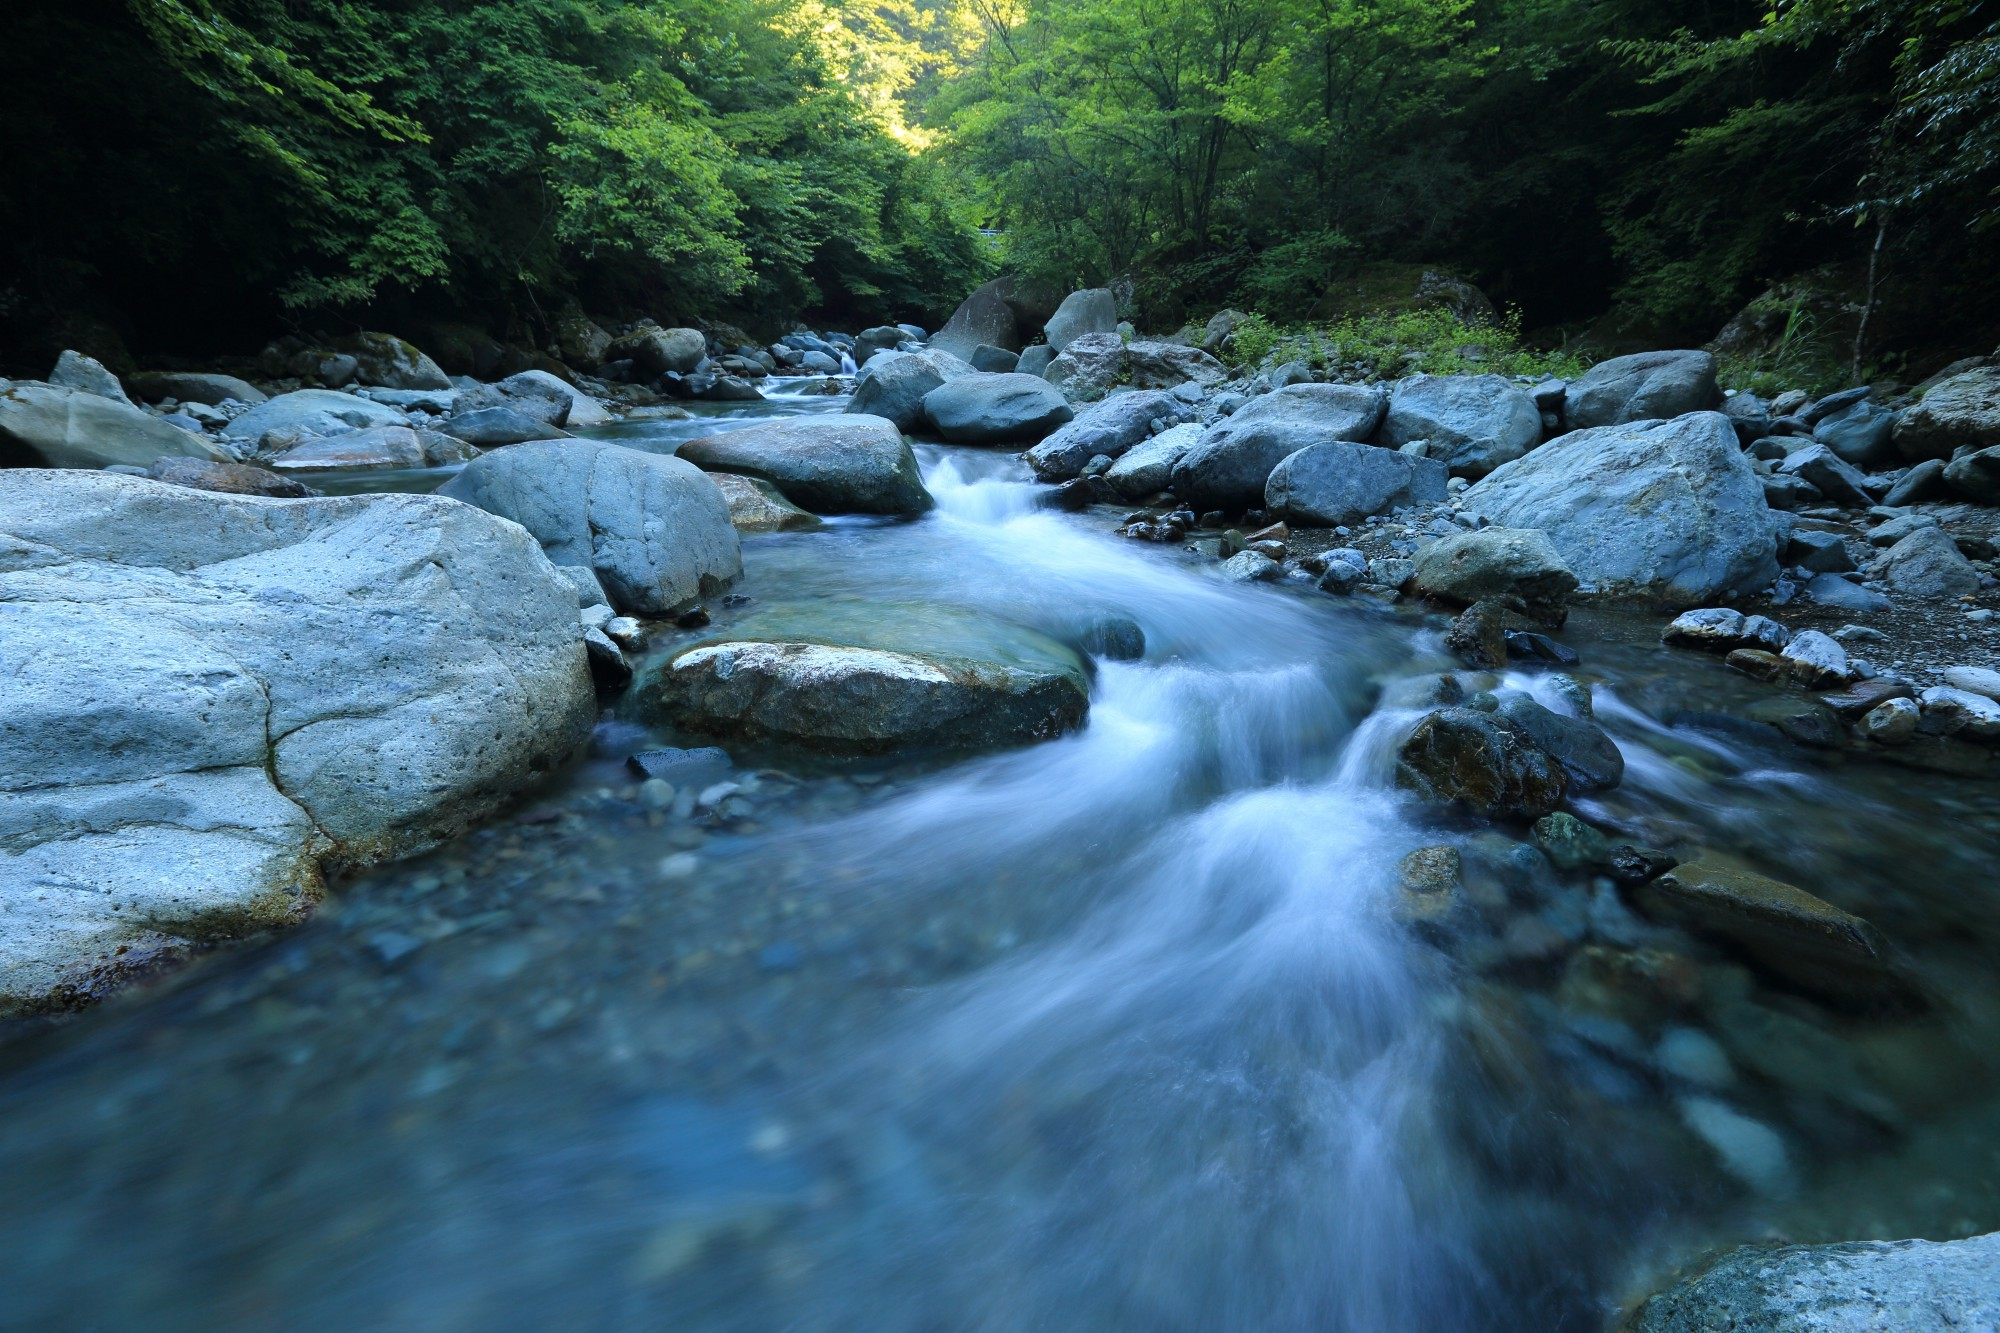 A rushing river flowing around stones.